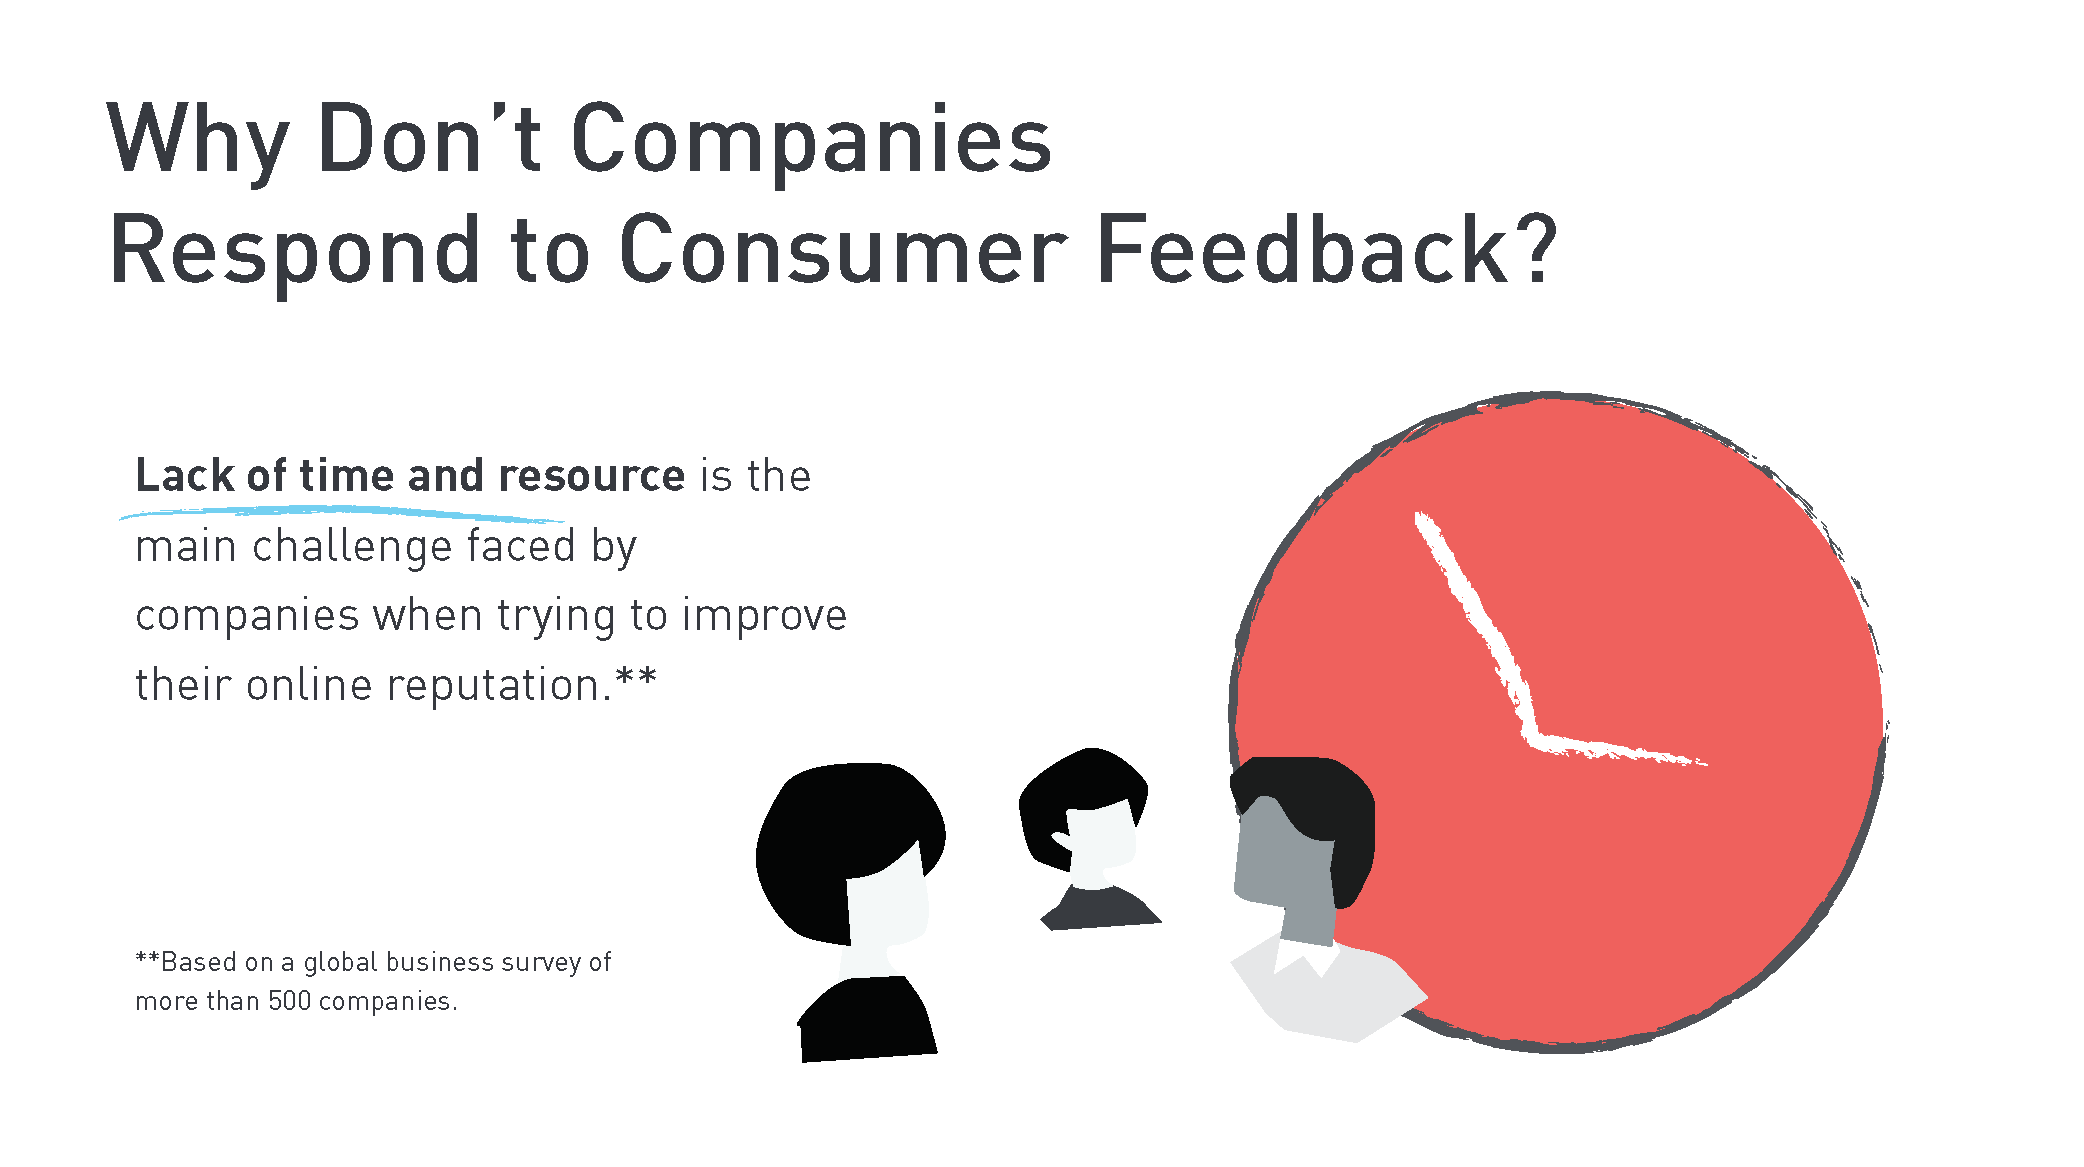 biz imperative infographic Page 7 - Responding to Customer Feedback: The Business Imperative